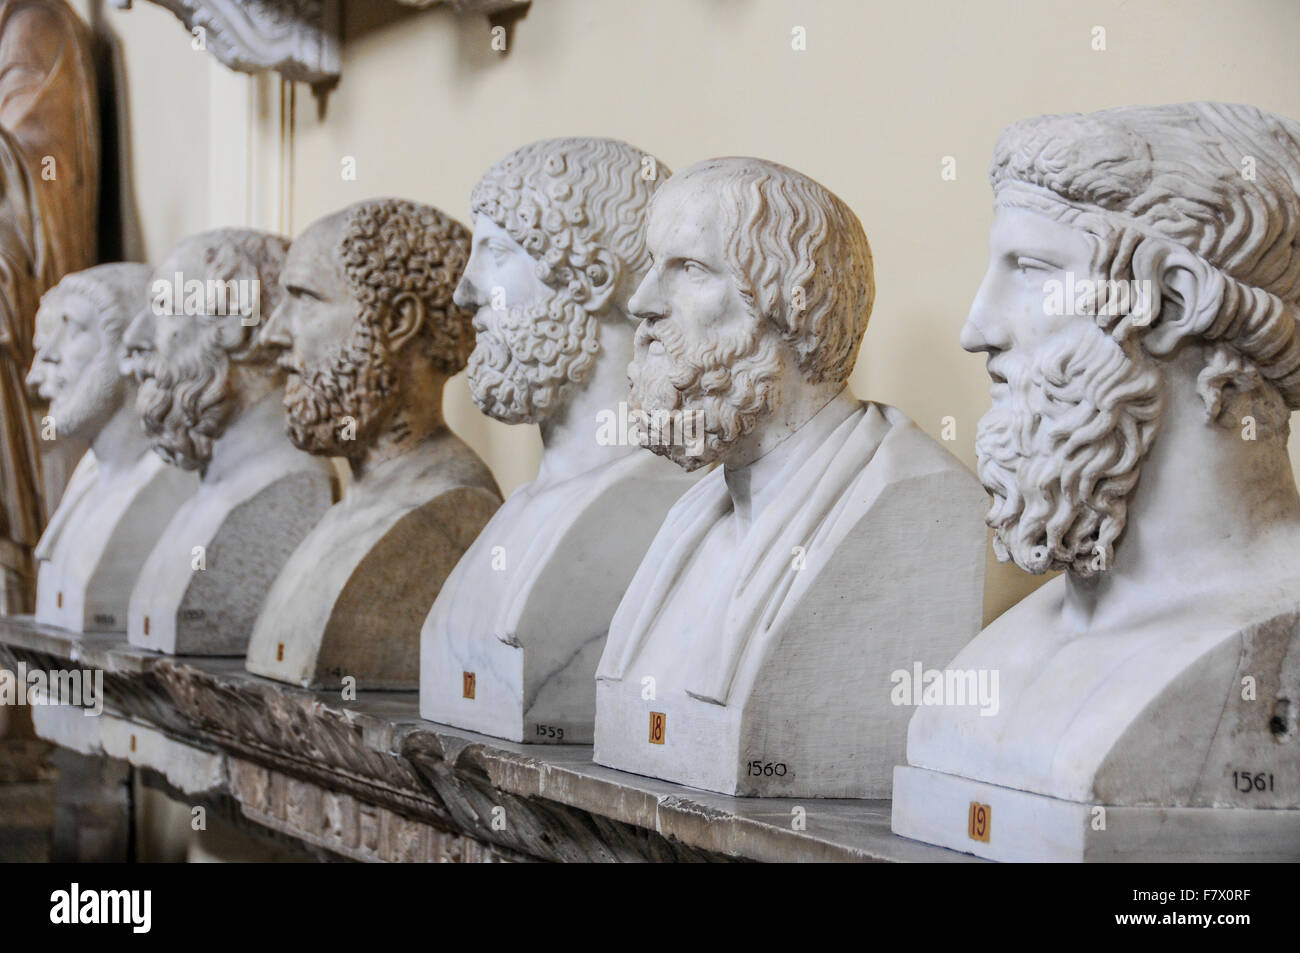 Statue of Roman Busts and Statue in Vatican Museums, Vatican - Stock Image